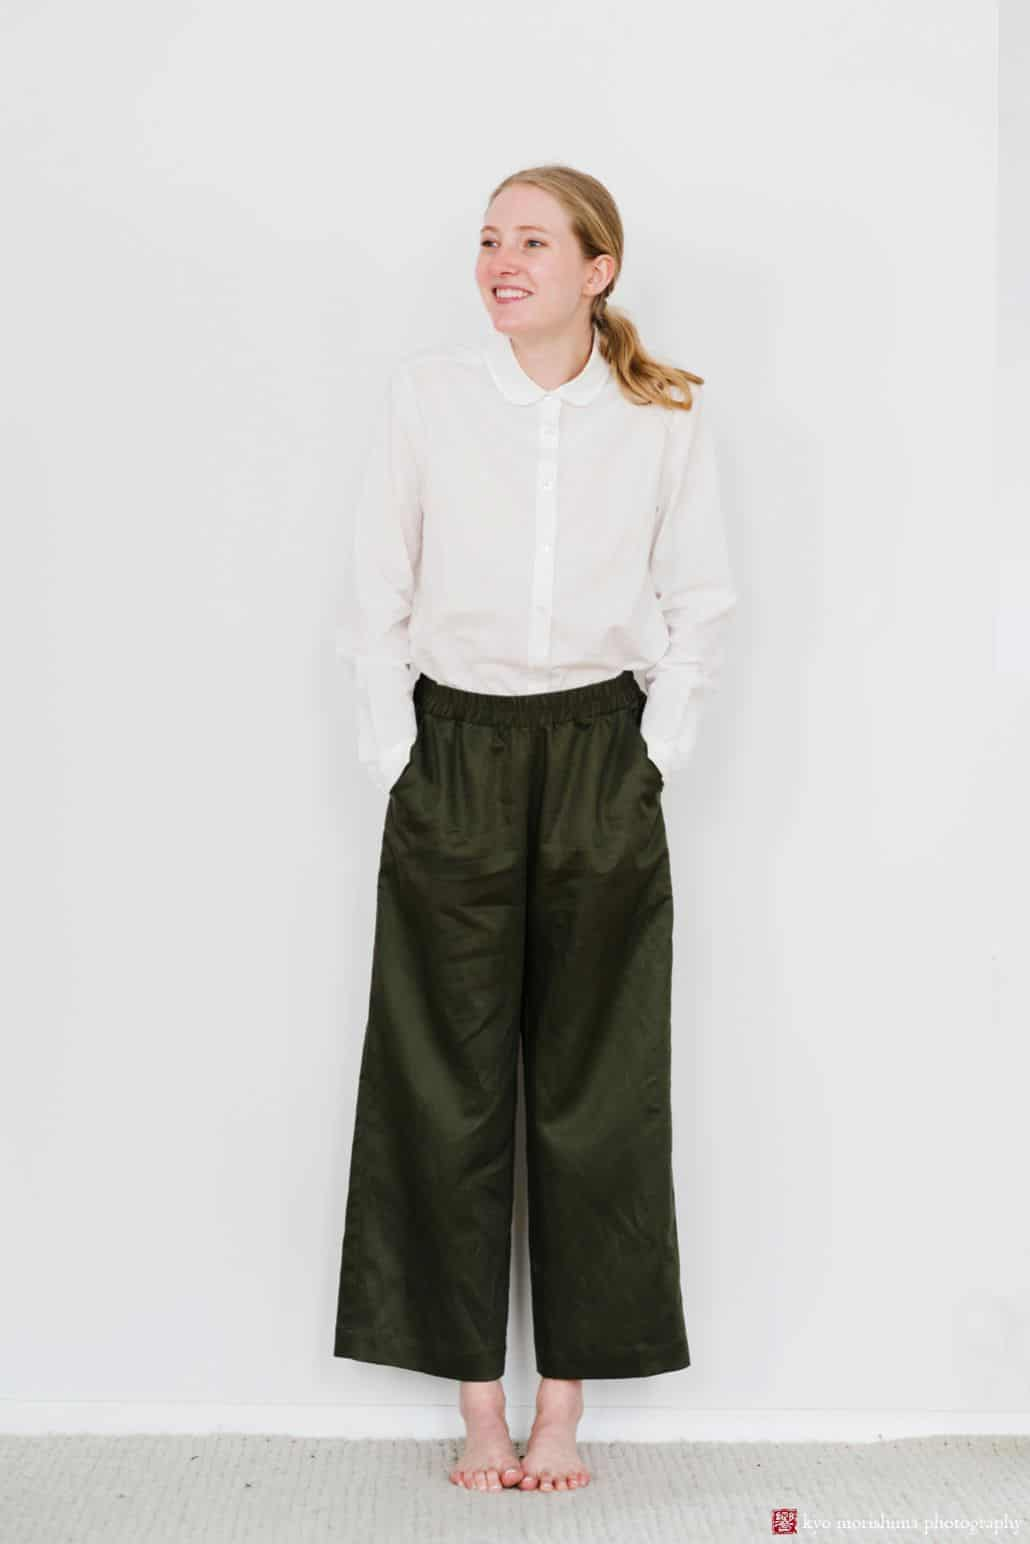 Lookbook photography for Princeton fashion label Semi Gloss NYC winter 2018 collection: white tailored shirt with loose-fitting olive green pants sewn from Japanese fabrics